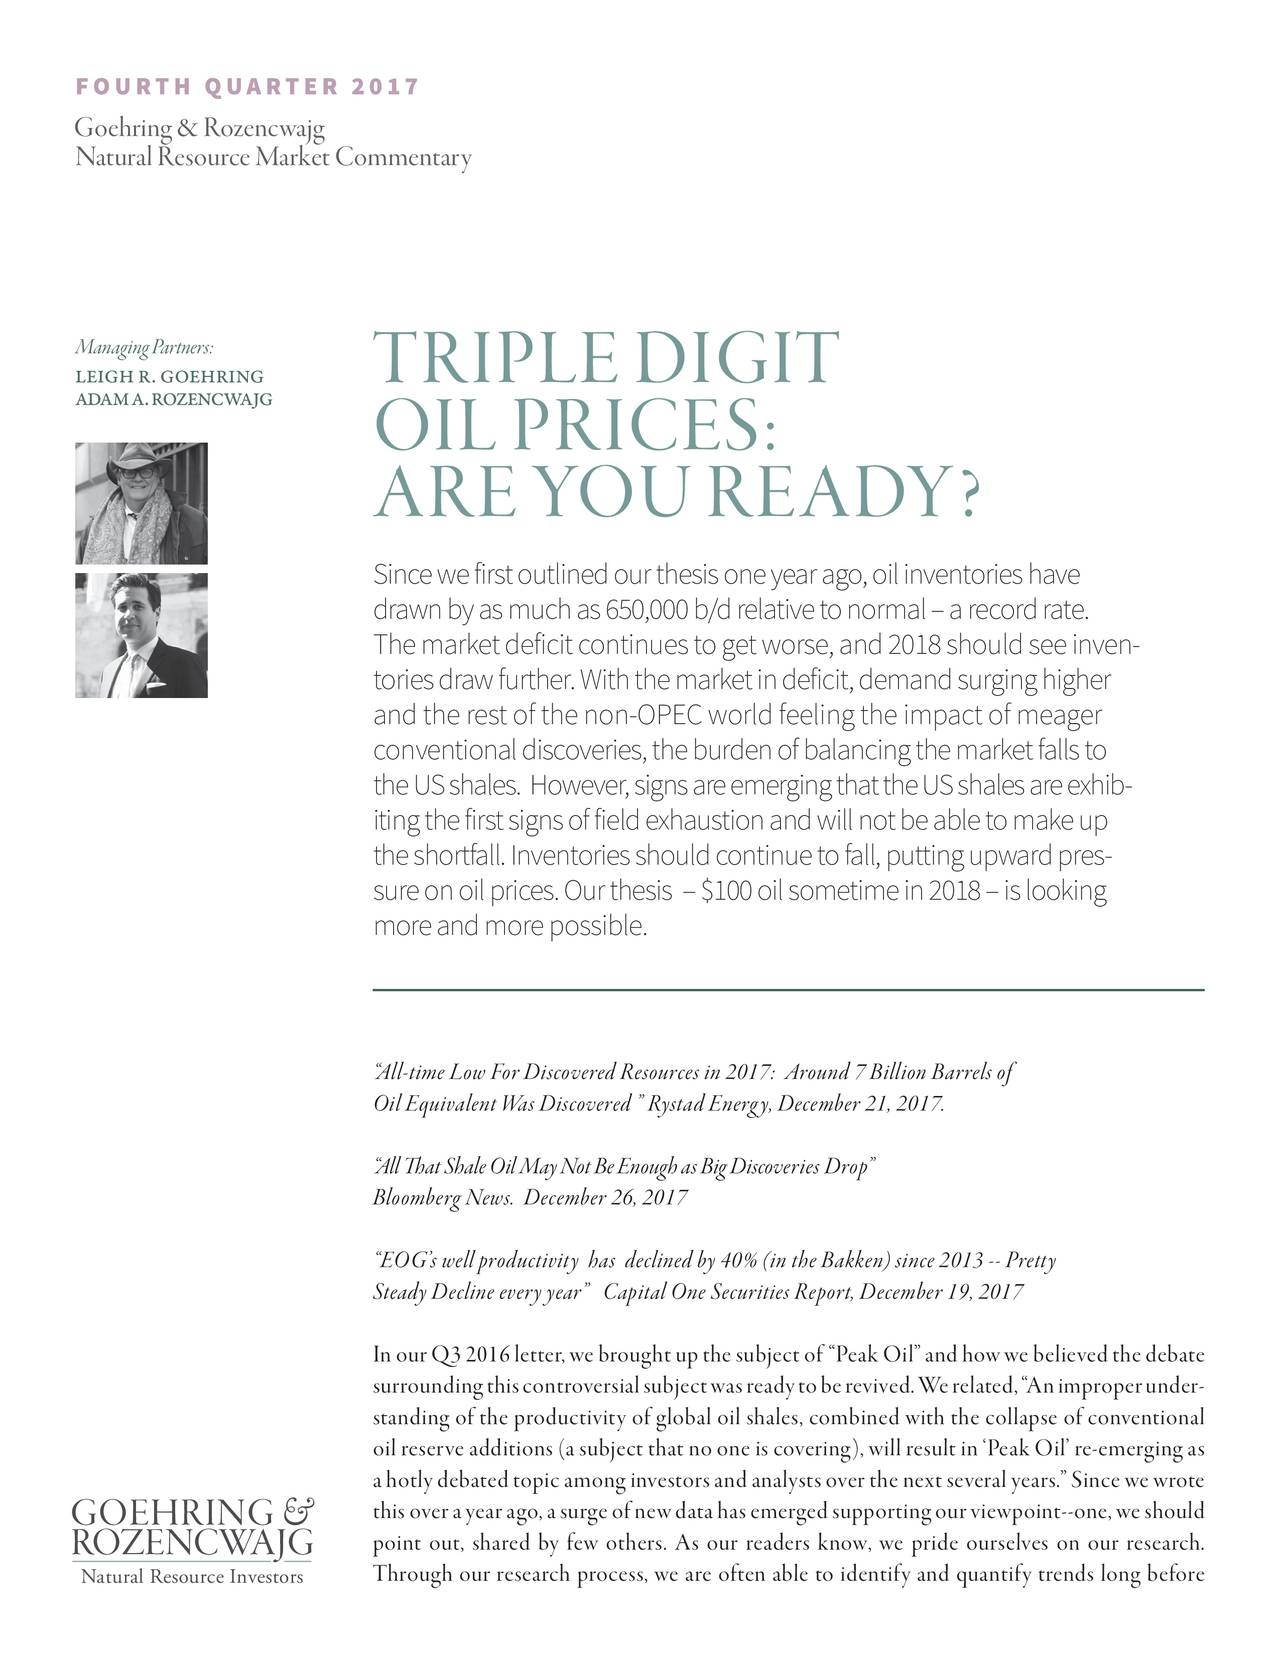 """Goehring & Rozenc wajg Natural Resource Market Commentary ManagingPartners: LEIGH R. GOEHRING TRIPLEDIGIT ADAMA.ROZENCWAJG OILPRICES: AREYOUREADY? Sincewefirstoutlinedourthesisoneyearago,oilinventorieshave drawnbyasmuchas650,000b/drelativetonormal–arecordrate. Themarketdeficitcontinuestogetworse,and2018shouldseein-en toriesdrawfurther.Withthemarketindeficit,demandsurginghigher andtherestofthenon-OPECworldfeelingtheimpactofmeager conventionaldiscoveries,theburdenofbalancingthemarketfallsto theUSshales. However,signsareemergingthattheUSshalesar-xhib itingthefirstsignsoffieldexhaustionandwillnotbeabletomakeup theshortfall.Inventoriesshouldcontinuetofall,puttingupward-pres sureonoilprices.Ourthesis –$100oilsometimein2018–islooking moreand more possible. """"All-time Low For Discovered Resources in 2017: Around 7 Billion Barrels of OilEquivalentWasDiscovered""""RystadEnergy,December21,2017. """"AllThatShaleOilMayNotBeEnoughasBigDiscoveries Drop"""" BloombergNews. December26,2017 """"EOG'swellproductivity has declinedby40%(intheBakken)since2013--Pretty SteadyDeclineeveryyear"""" CapitalOneSecuritiesReport,December19,2017 InourQ32016letter,webroughtupthesubjectof """"PeakOil""""andhowwebelievedthedebate surroundingthiscontroversialsubjectwasreadytoberevived.Were-ated,""""Animproperunder standing of the productivity of global oil shales, combined with the collapse of conventional oil reserve additions (a subject that no one is covering), will result in 'Peak Oil' re-emerging as ahotlydebatedtopicamonginvestorsandanalystsoverthenextseveralyears.""""Sincewewrote GOEHRING & thisoverayearago,asurgeofnewdatahasemergedsupportingourviewpoint--one,weshould ROZENCWAJG point out, shared by few others. As our readers know, we pride ourselves on our research. Natural Resource Investorsgh our research process, we are often able to identify and quantify trends long before"""